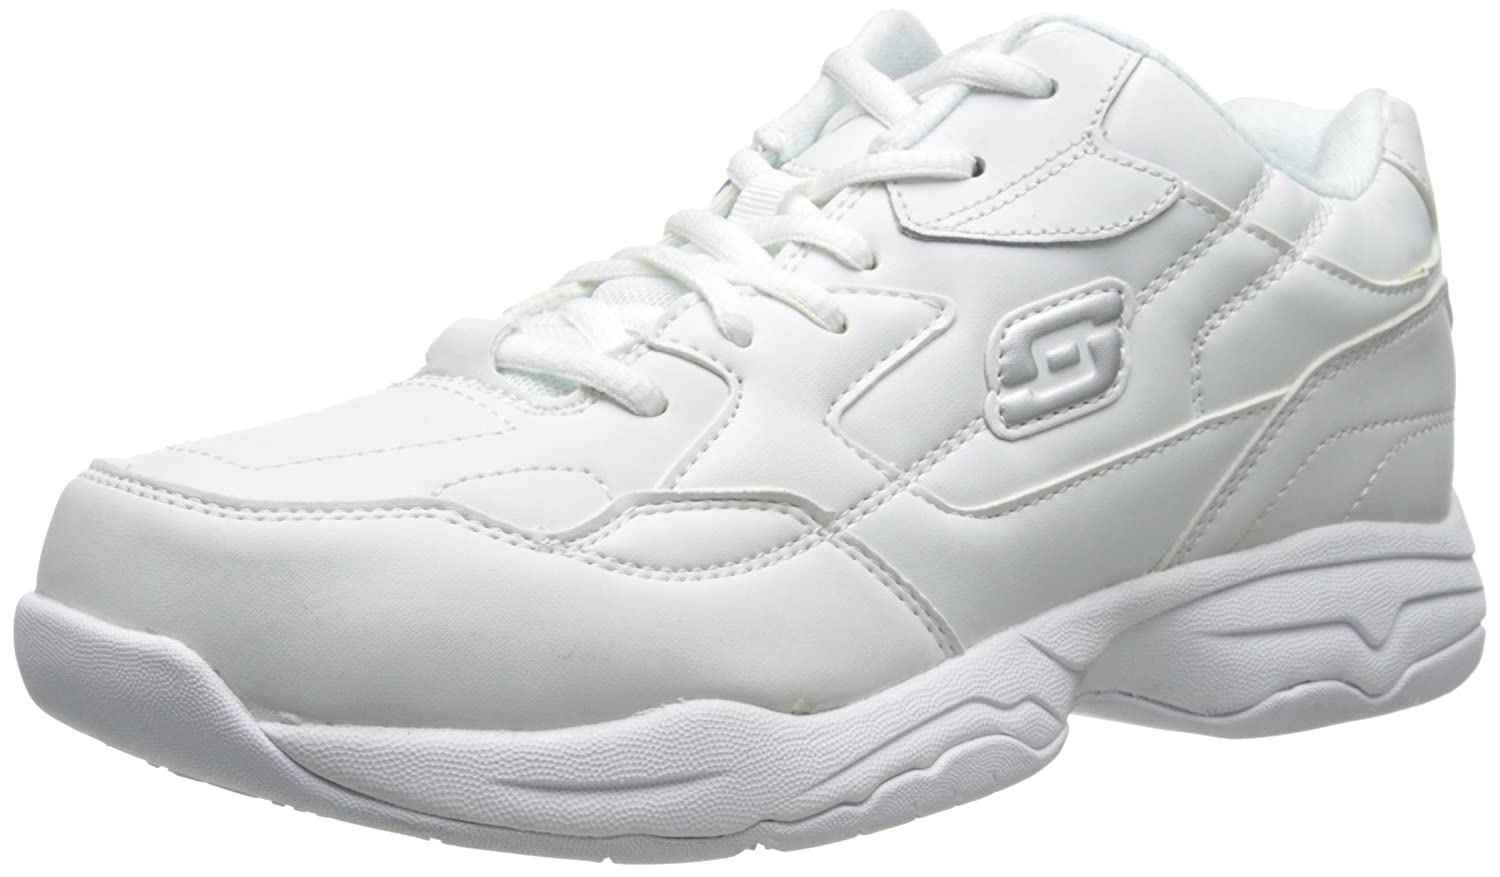 Skechers for Women's Work Albie Walking Shoe B00KY02HD4 7.5 M US|White